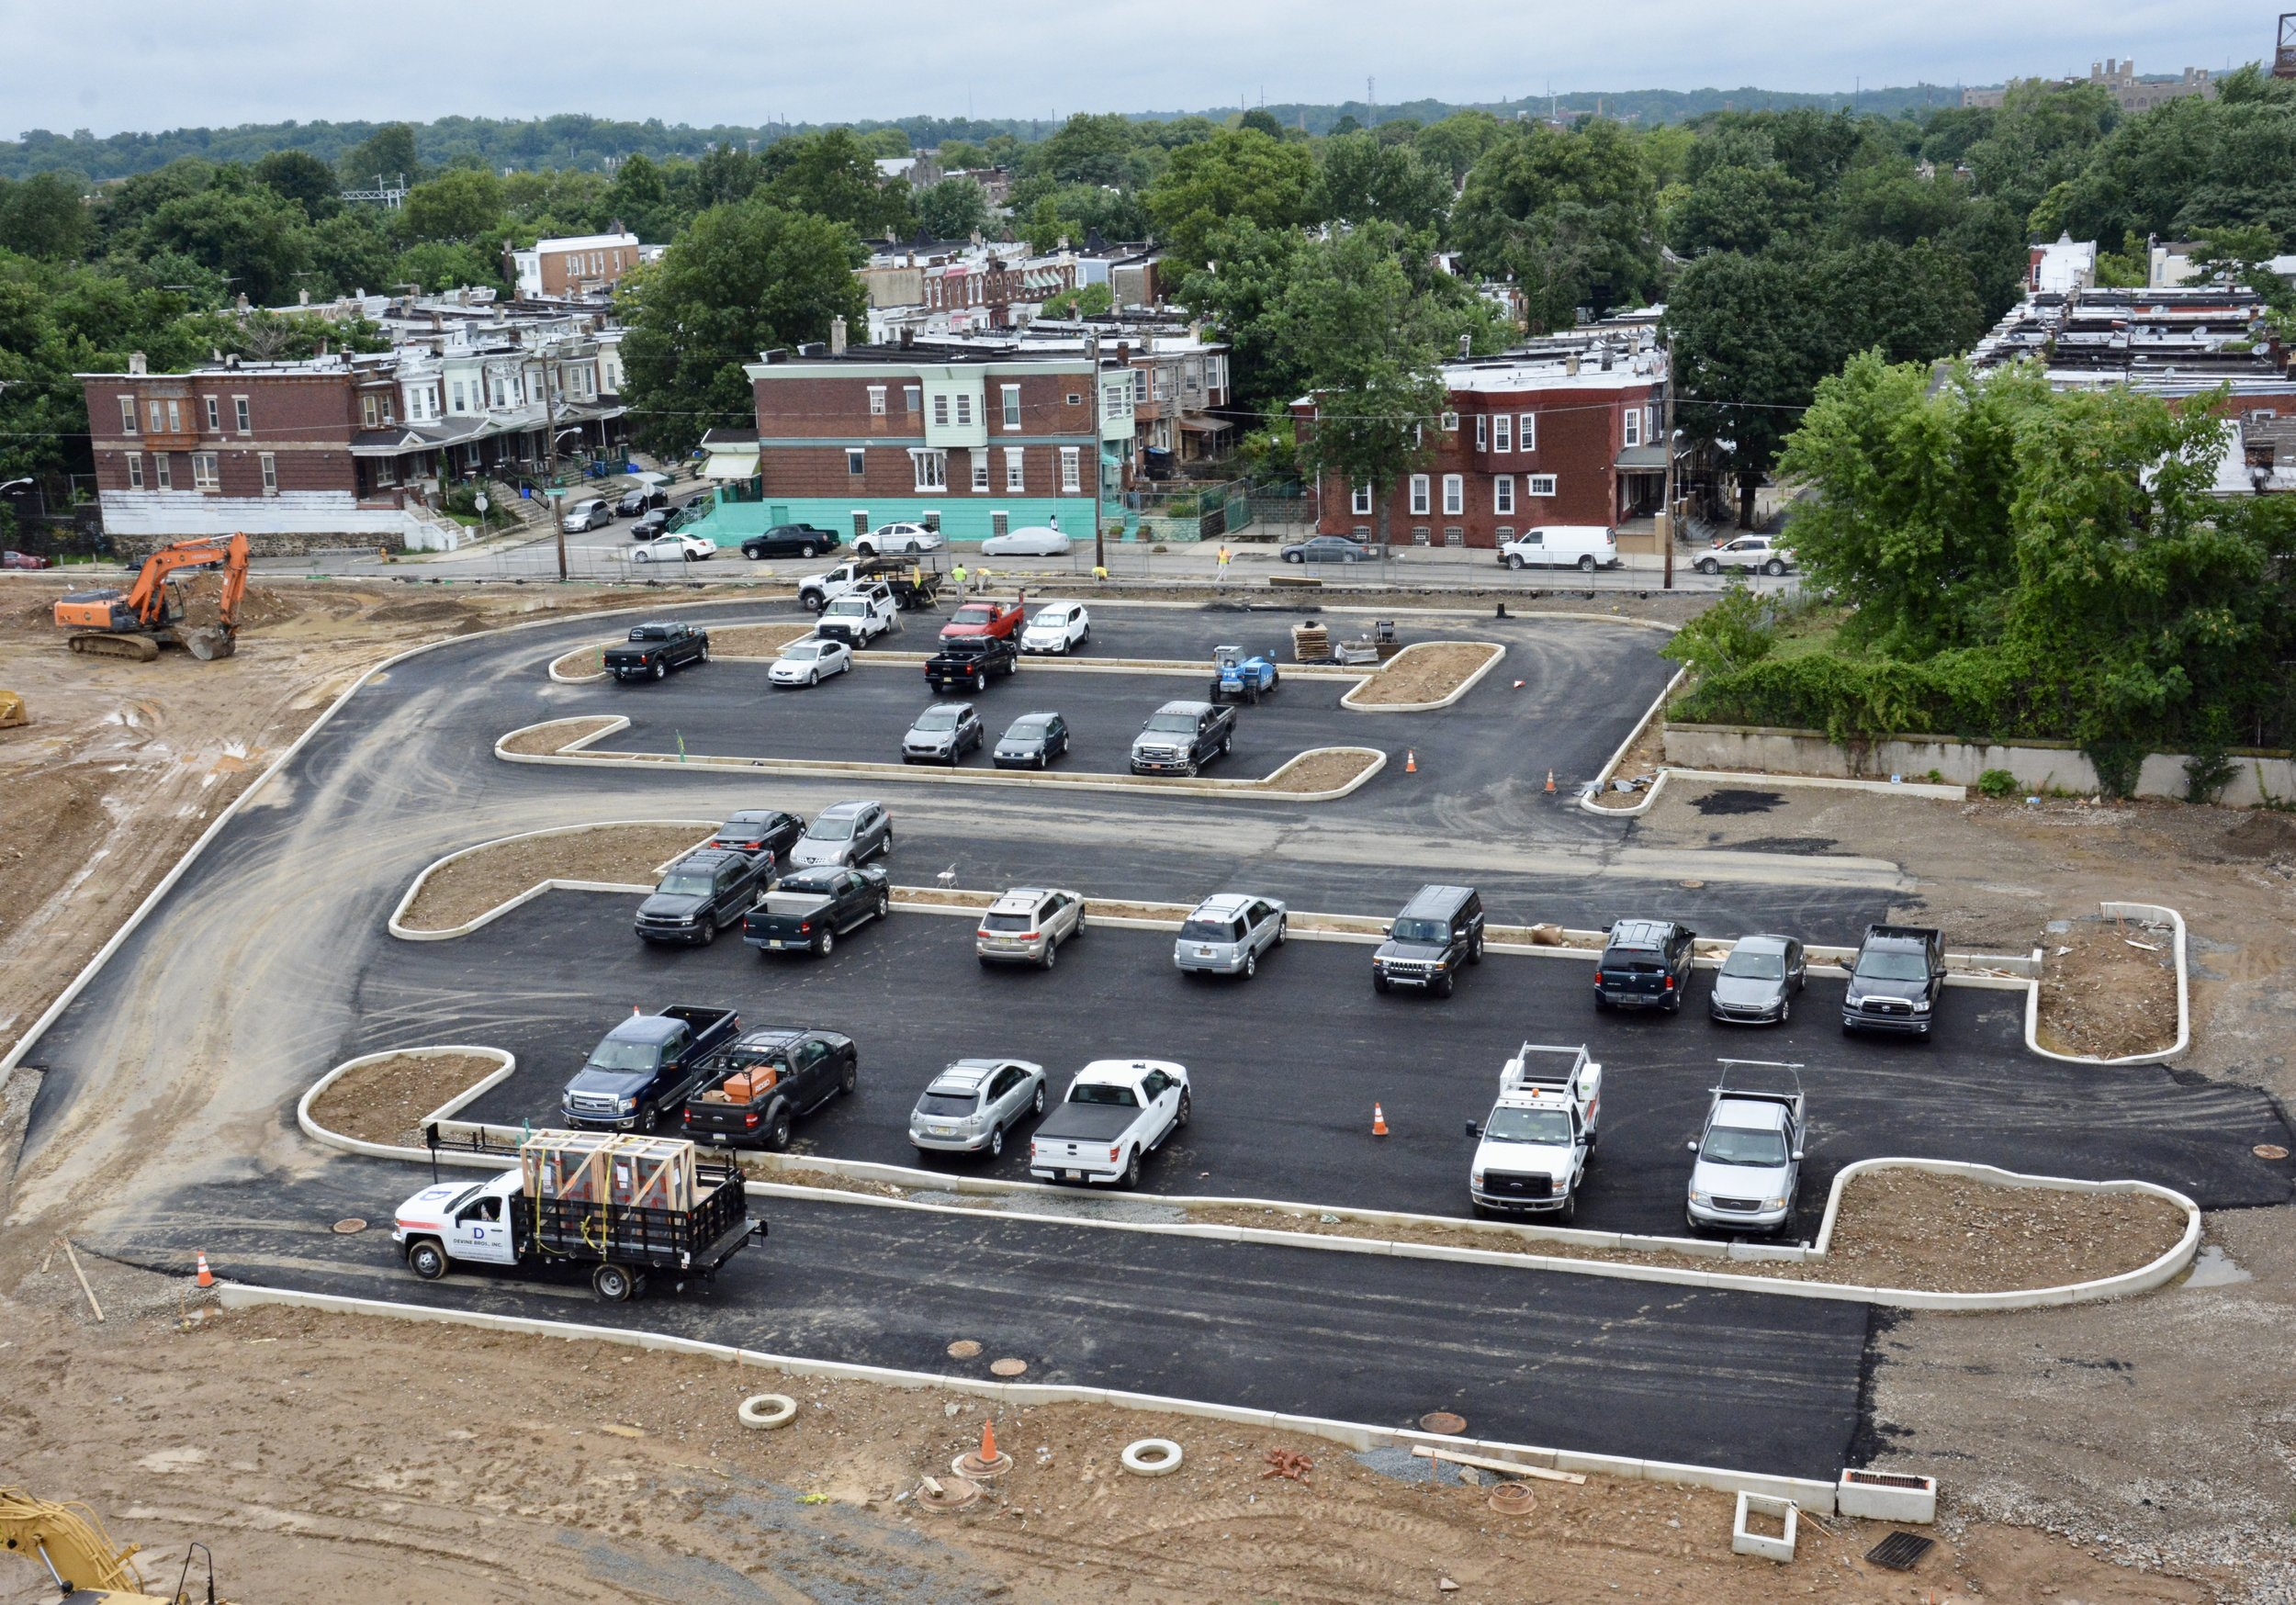 Aerial view of paved parking lot.